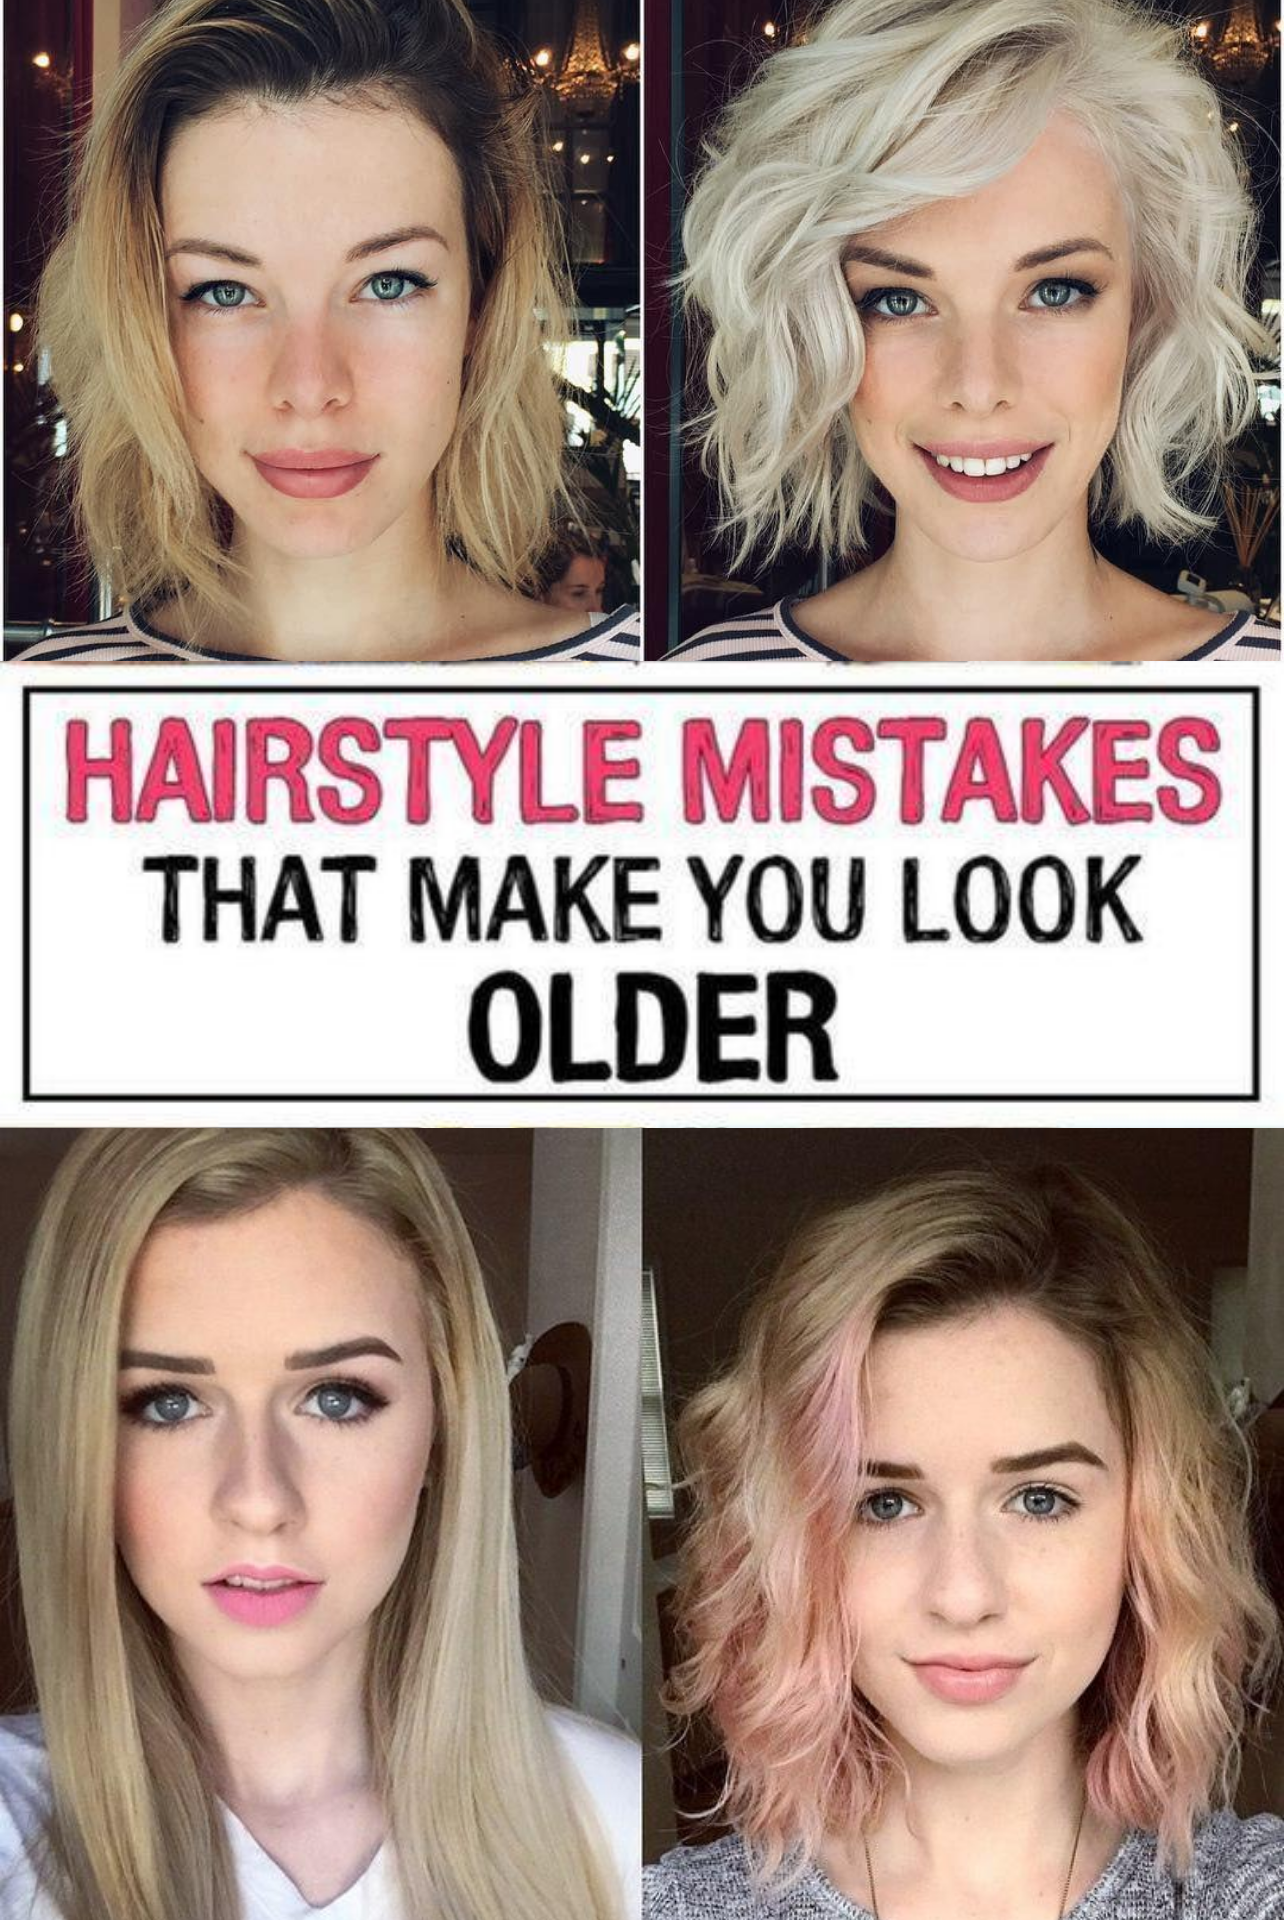 17 Hairstyle Mistakes That Are Aging You In 2020 Hairstyle Hair Advice Hair Mistakes